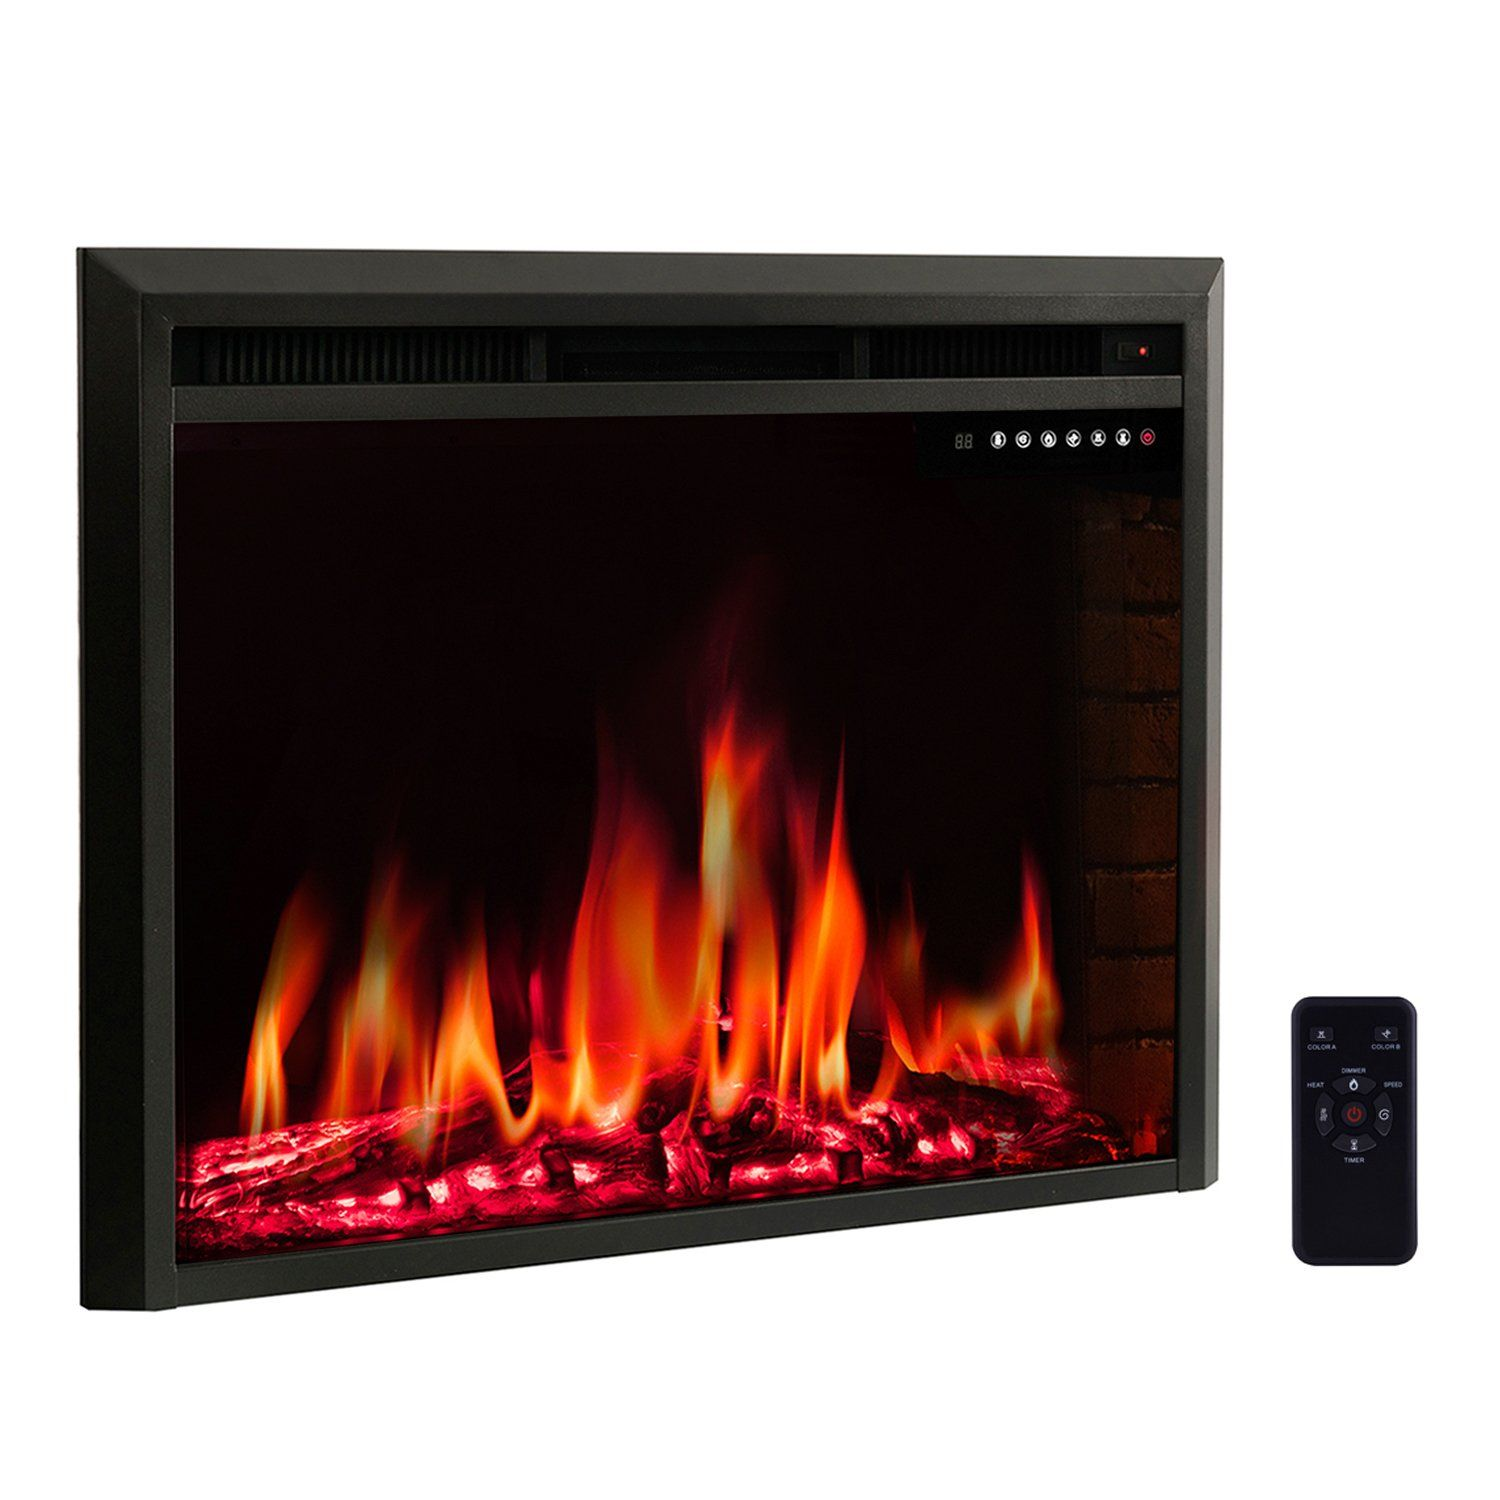 R W Flame 39 Electric Fireplace Insertfreestanding And Recessed Electric Stove Heaterto Electric Fireplace Insert Fireplace Inserts Recessed Electric Fireplace